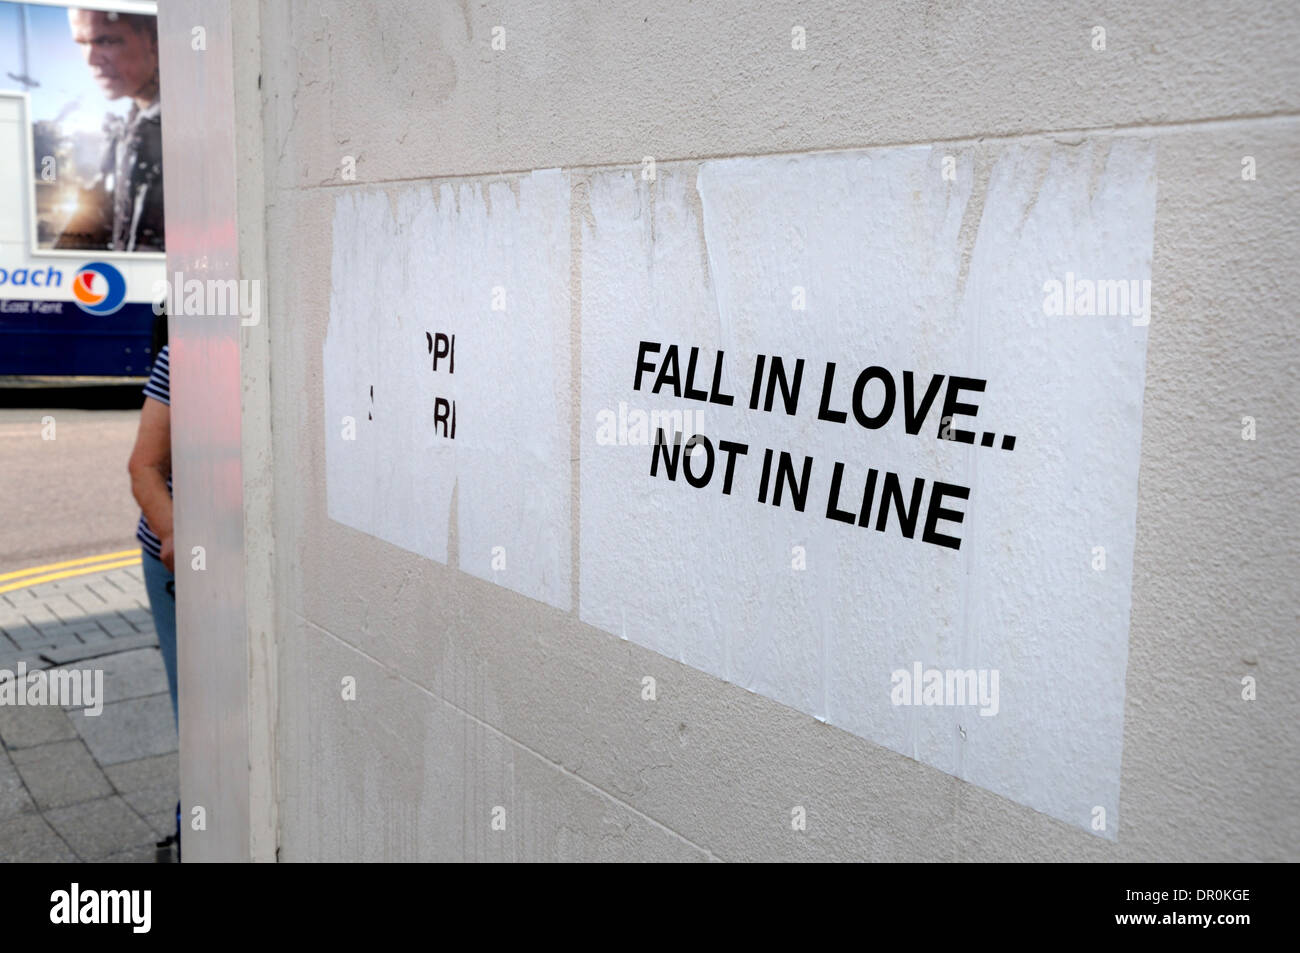 Whitstable, Kent, England, UK. Poster stuck on wall - 'Fall in Love, not in Line' - Stock Image